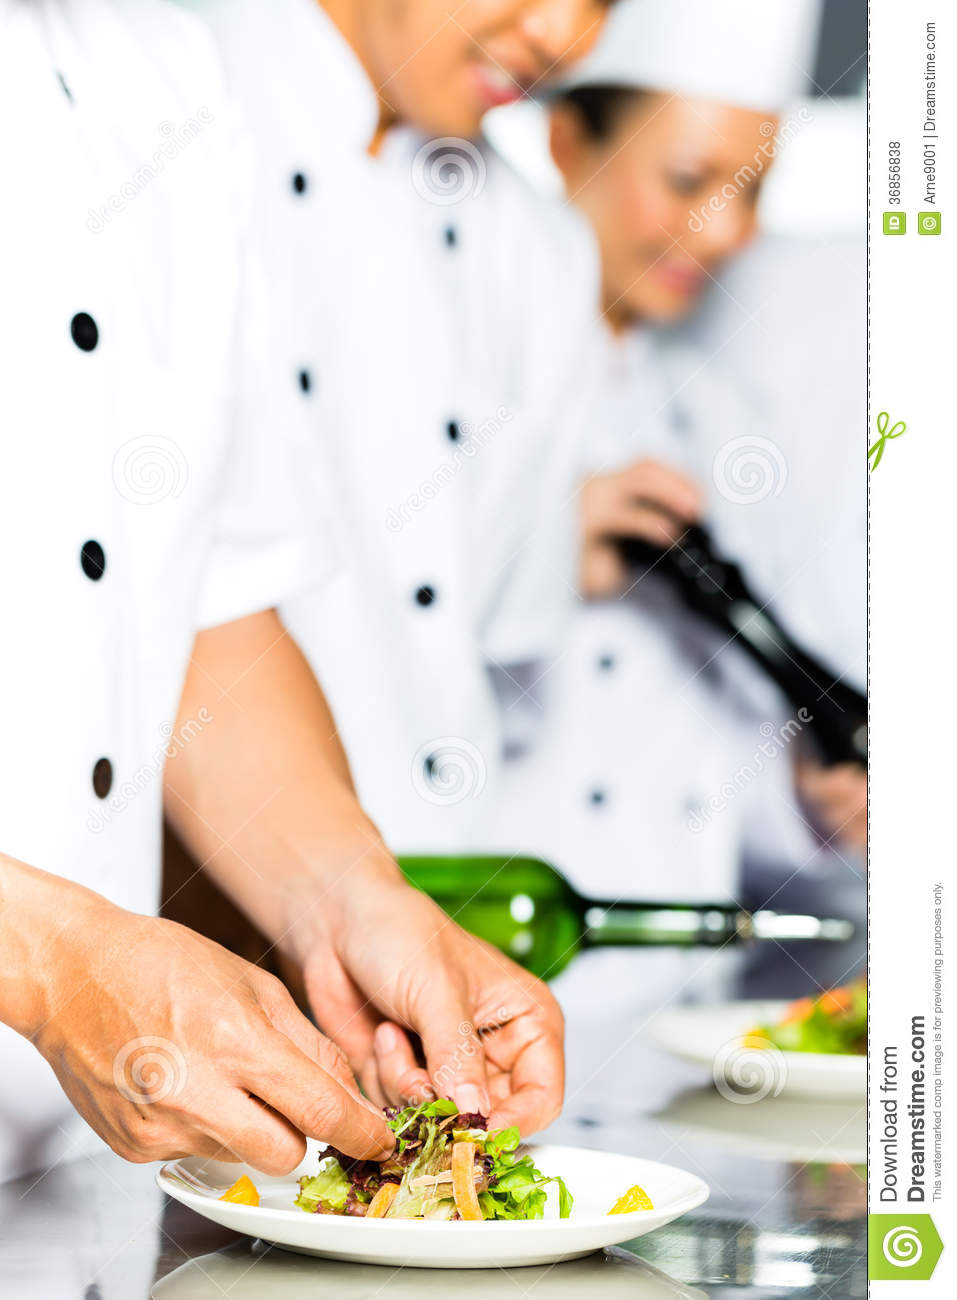 Ideas To Make The Preparing food Much Better asian-chef-restaurant-kitchen-cooking-indonesian-along-other-cooks-hotel-commercial-finishing-dish-plate-36856838